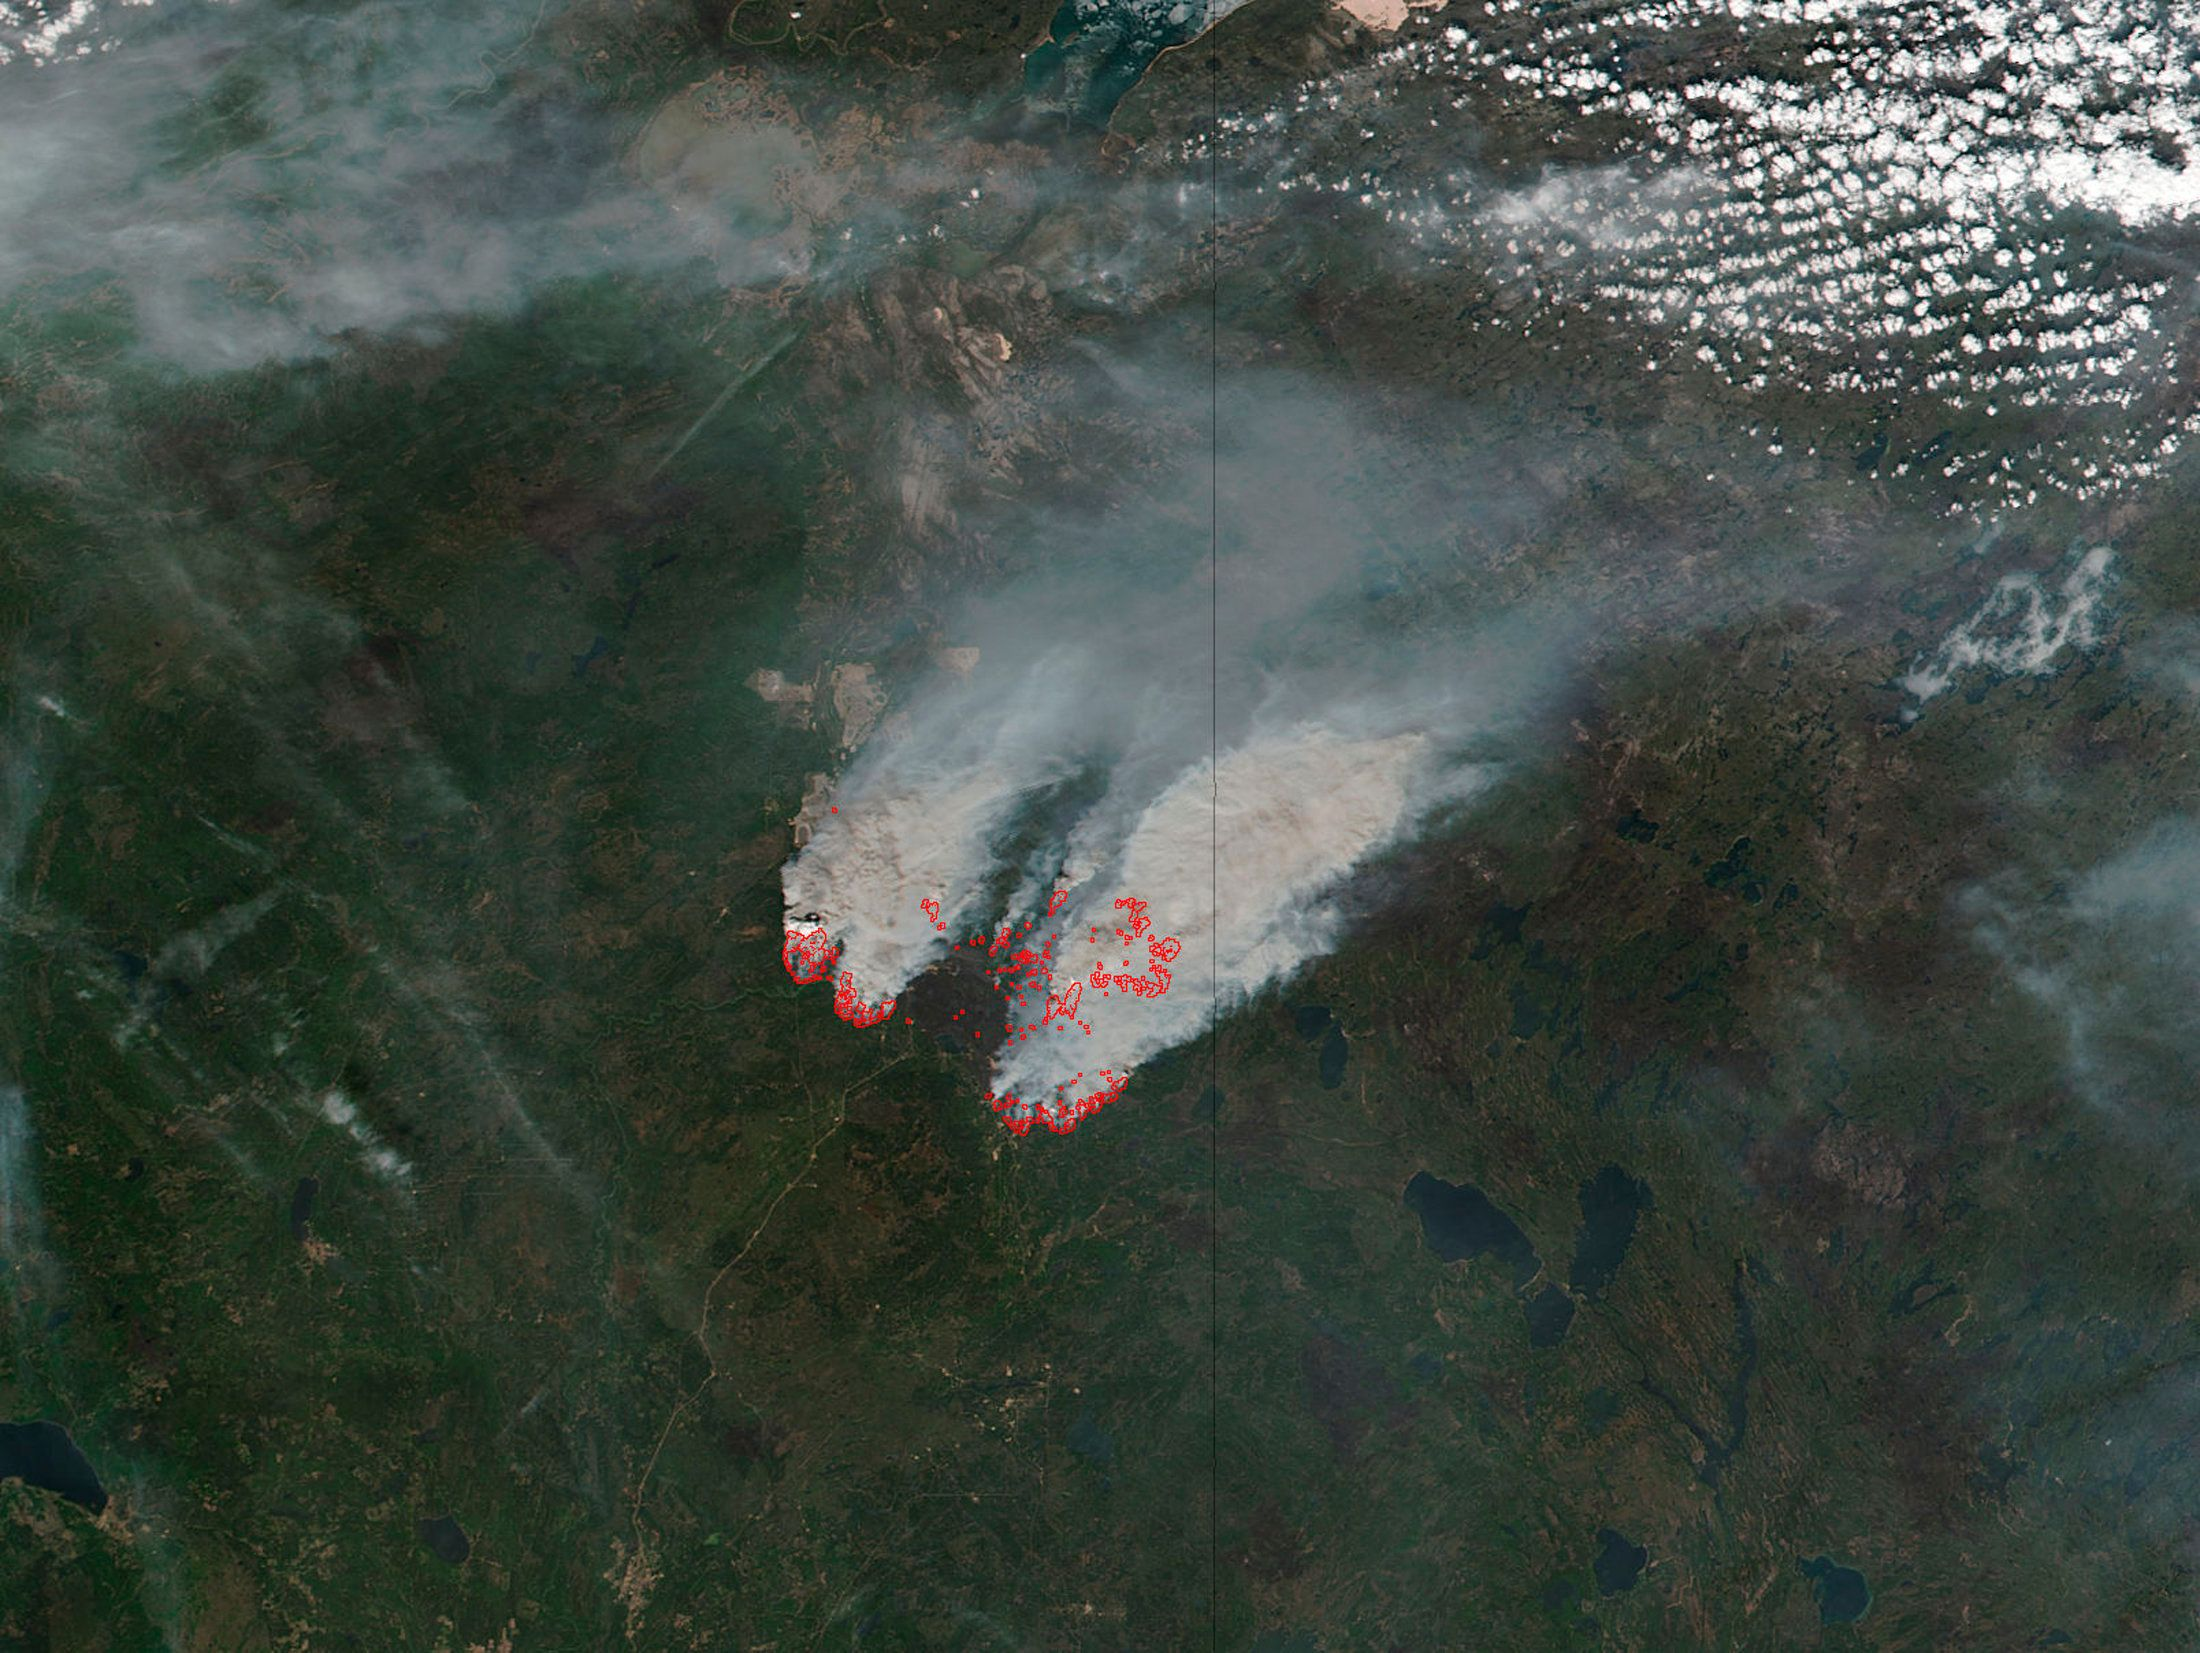 NASA's satellite image shows columns of smoke rising up from the myriad of wildfires, with NASA outlining...